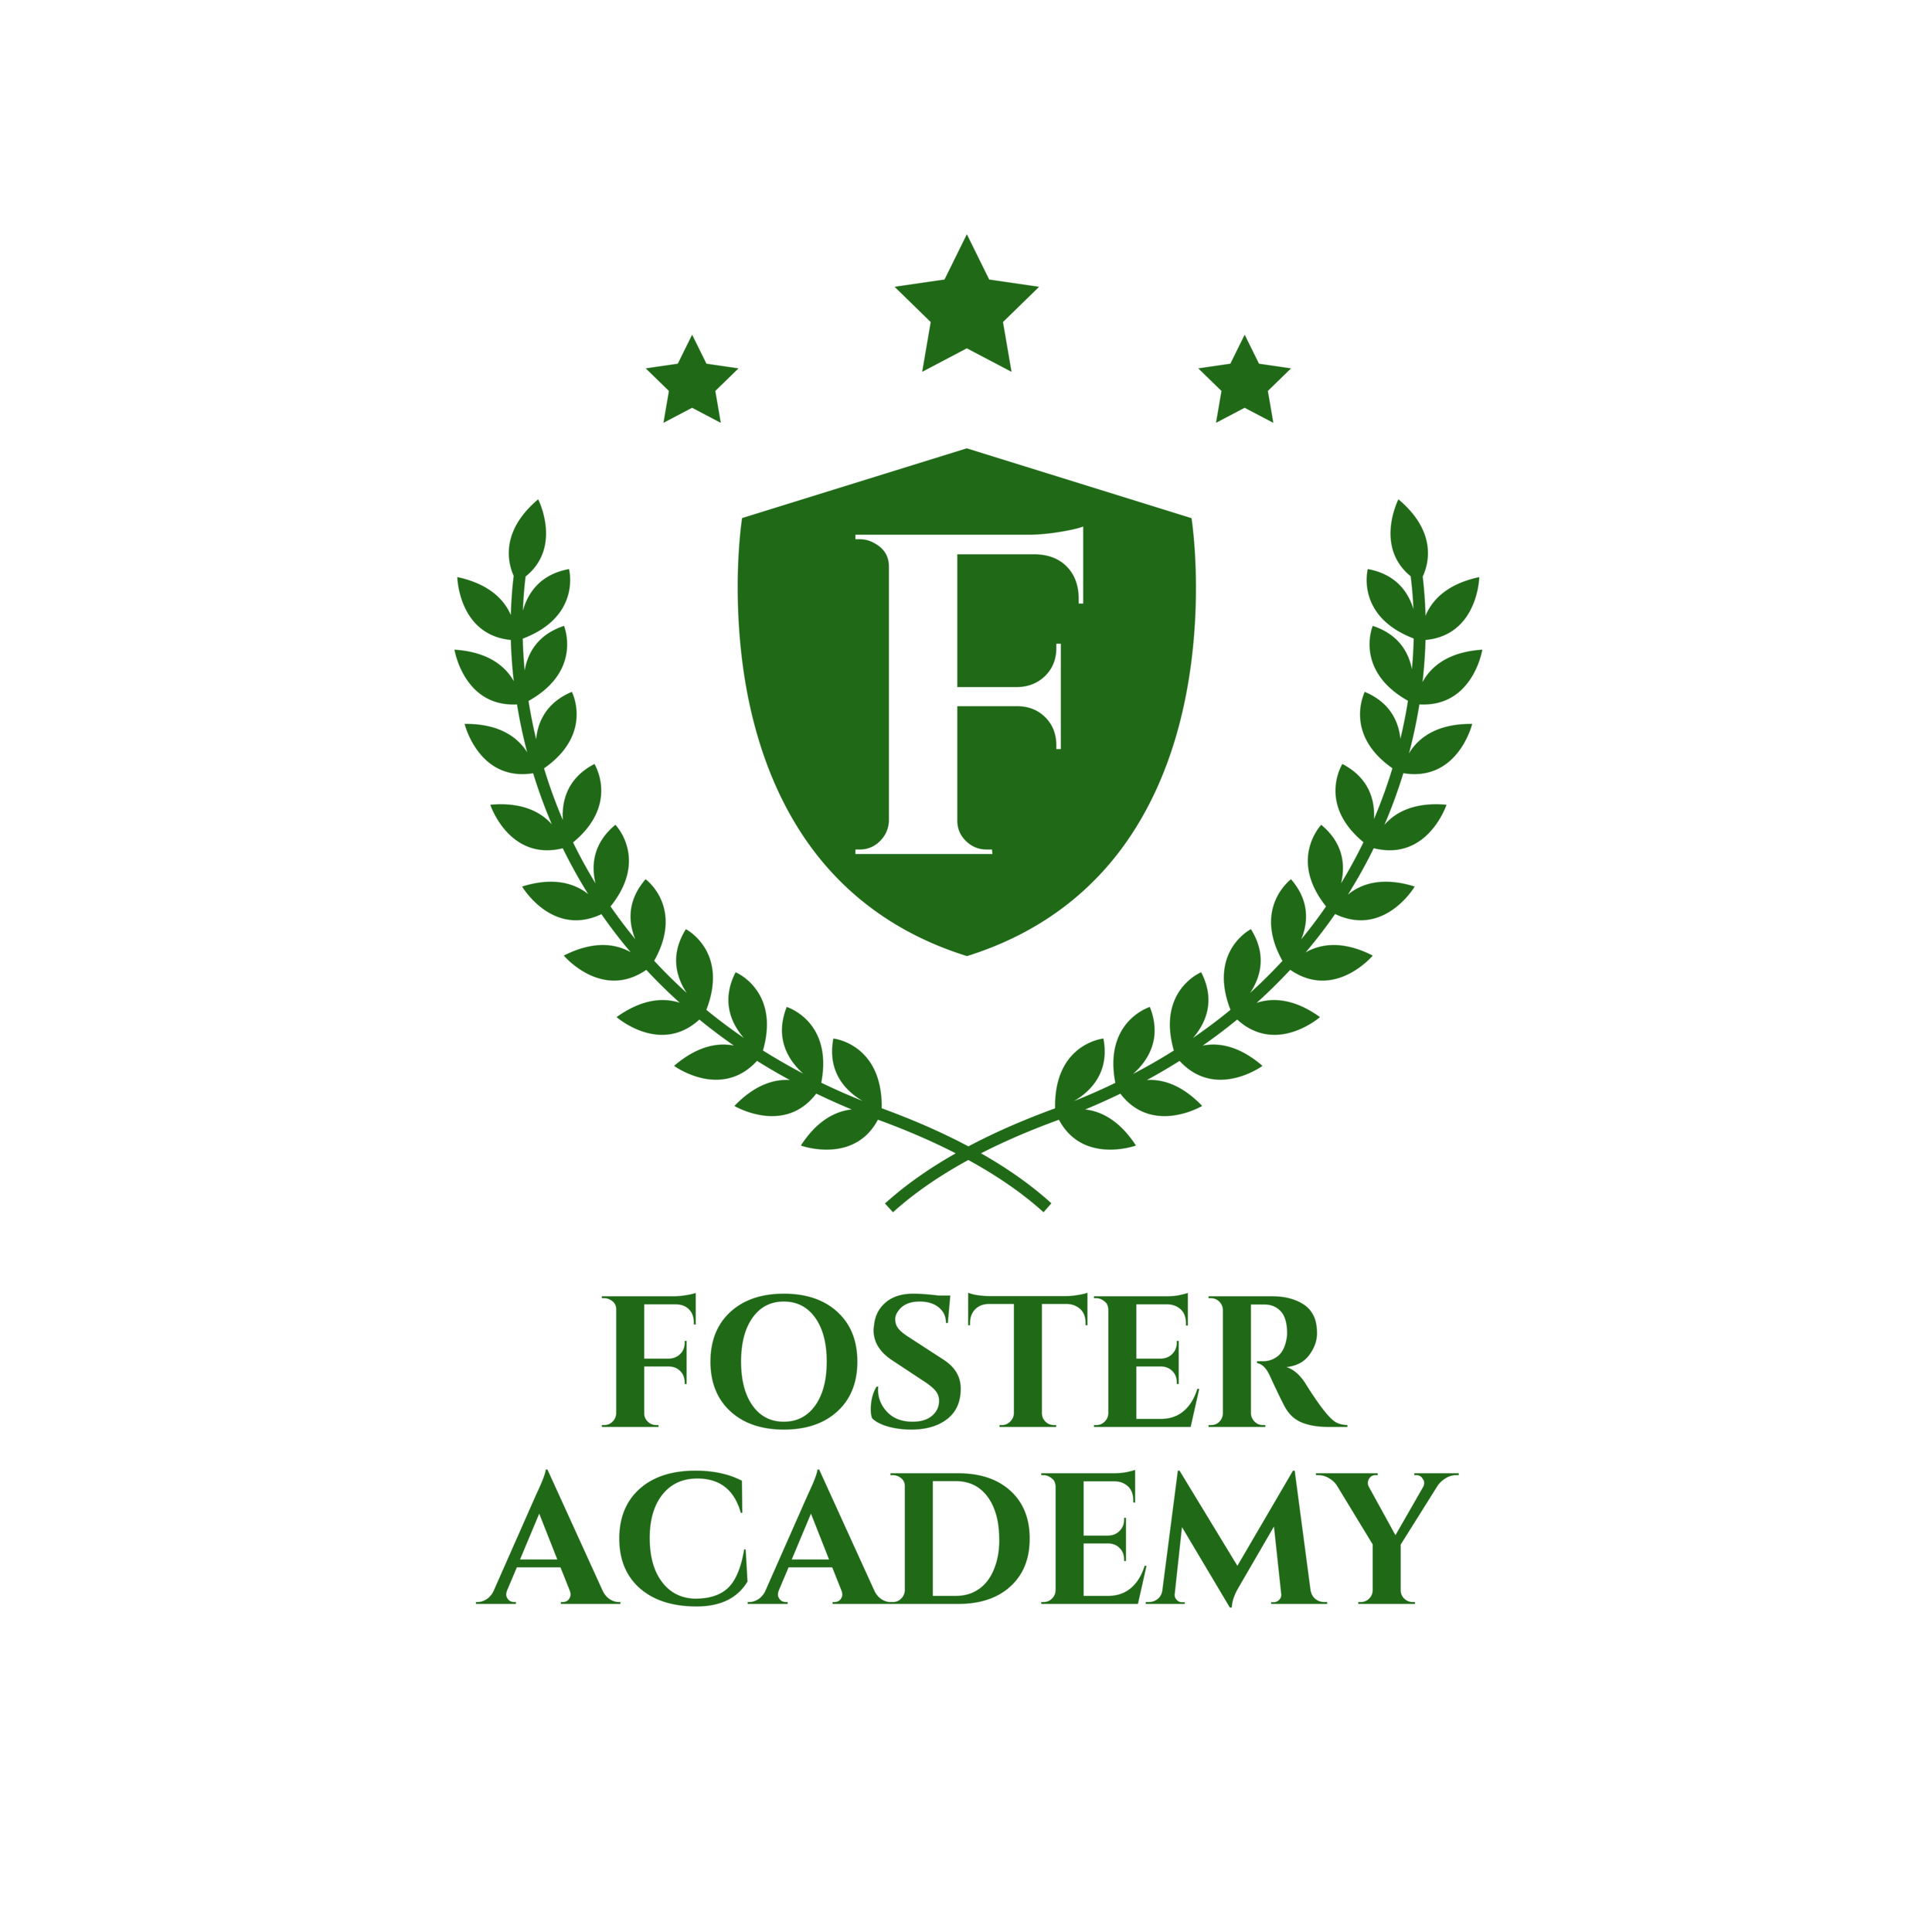 Copy of For Sign Foster Academy logo Green on White.png